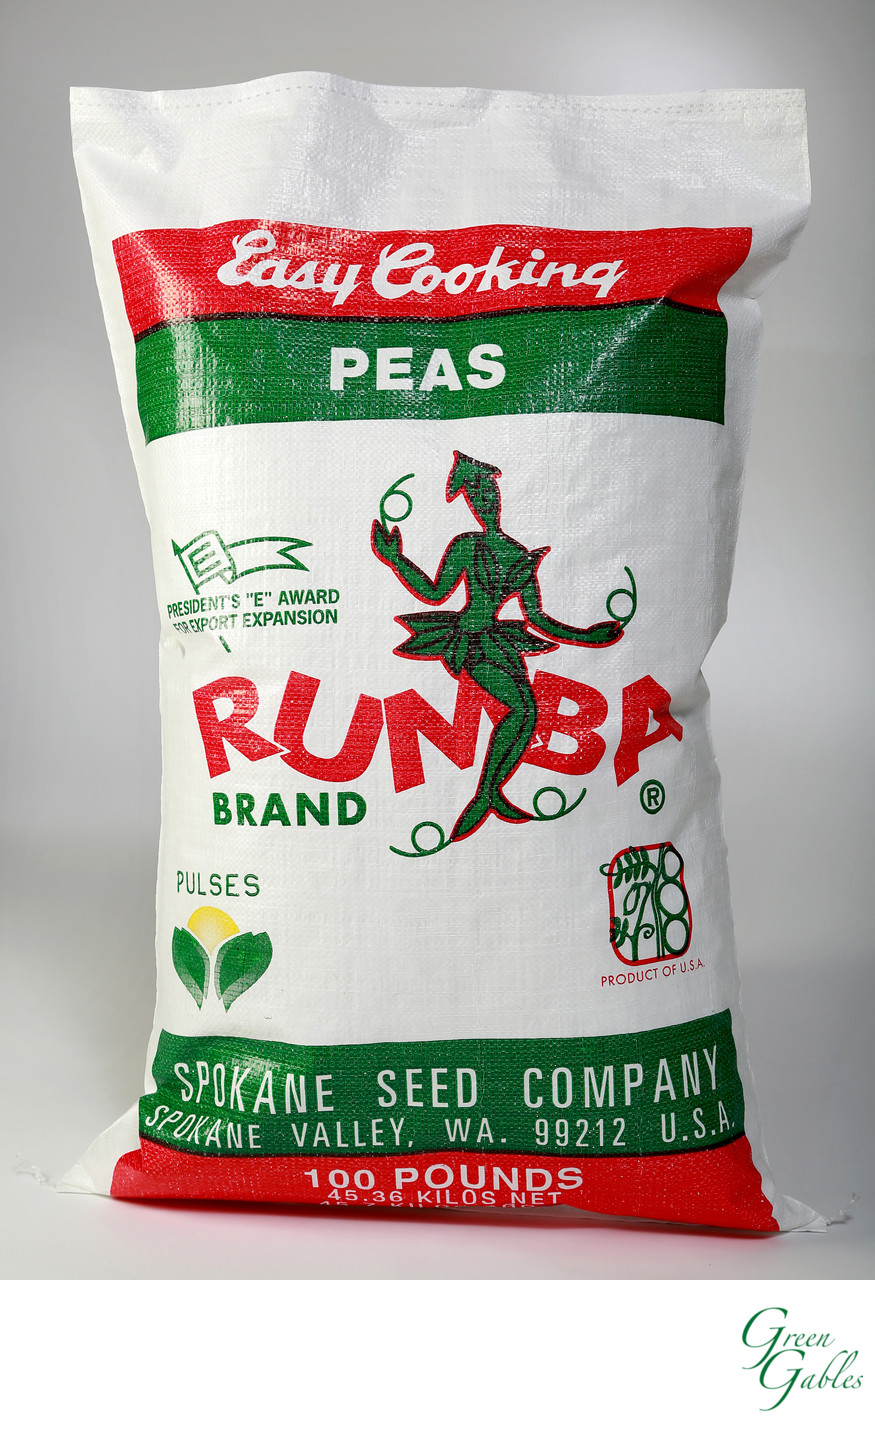 Spokane Seed Company, Easy Cooking Peas